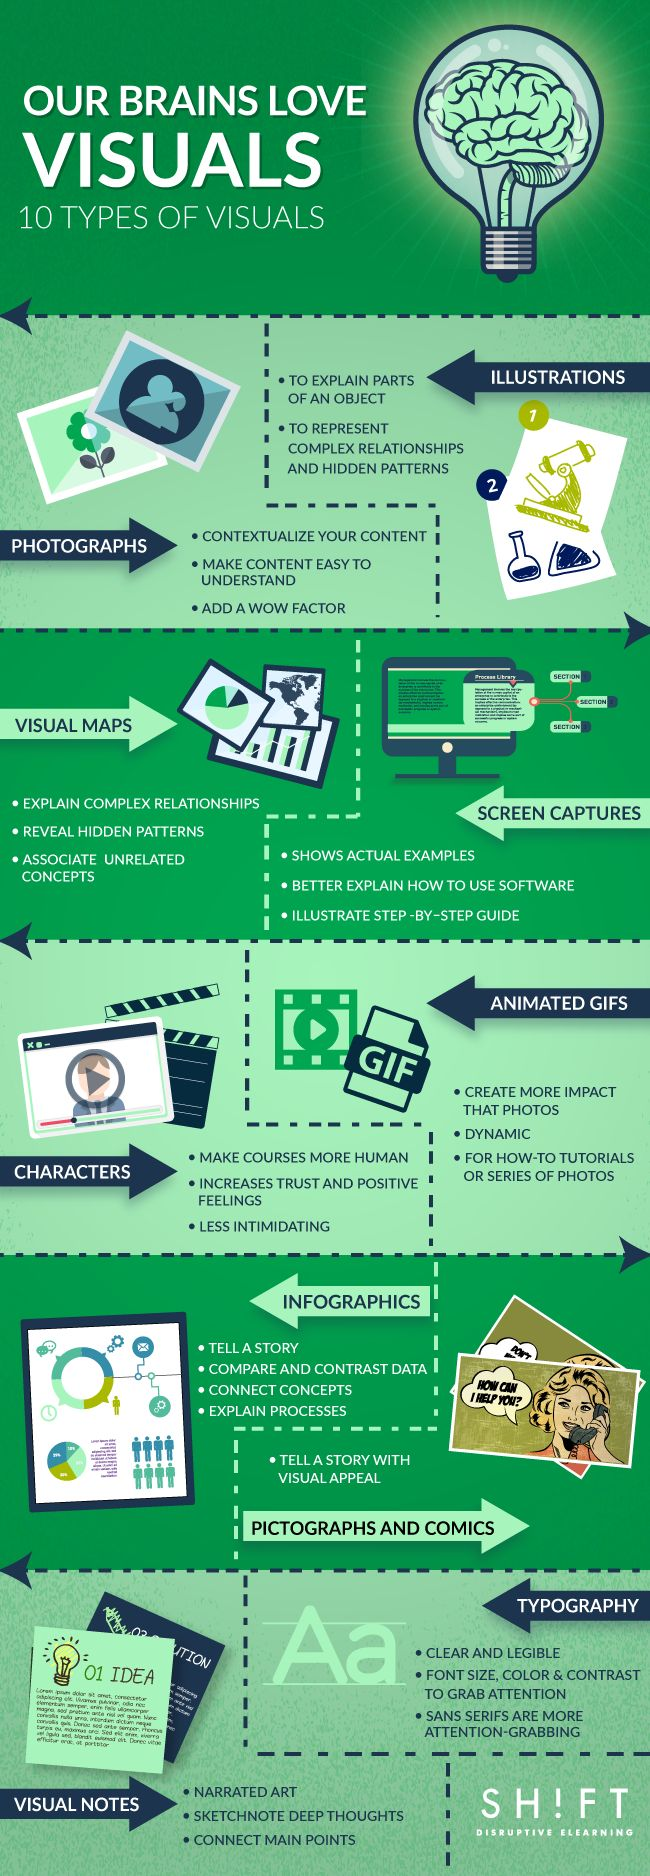 Types of Visual Content to Improve Learner Engagement Infographic - http://elearninginfographics.com/types-visual-content-improve-learner-engagement-infographic/